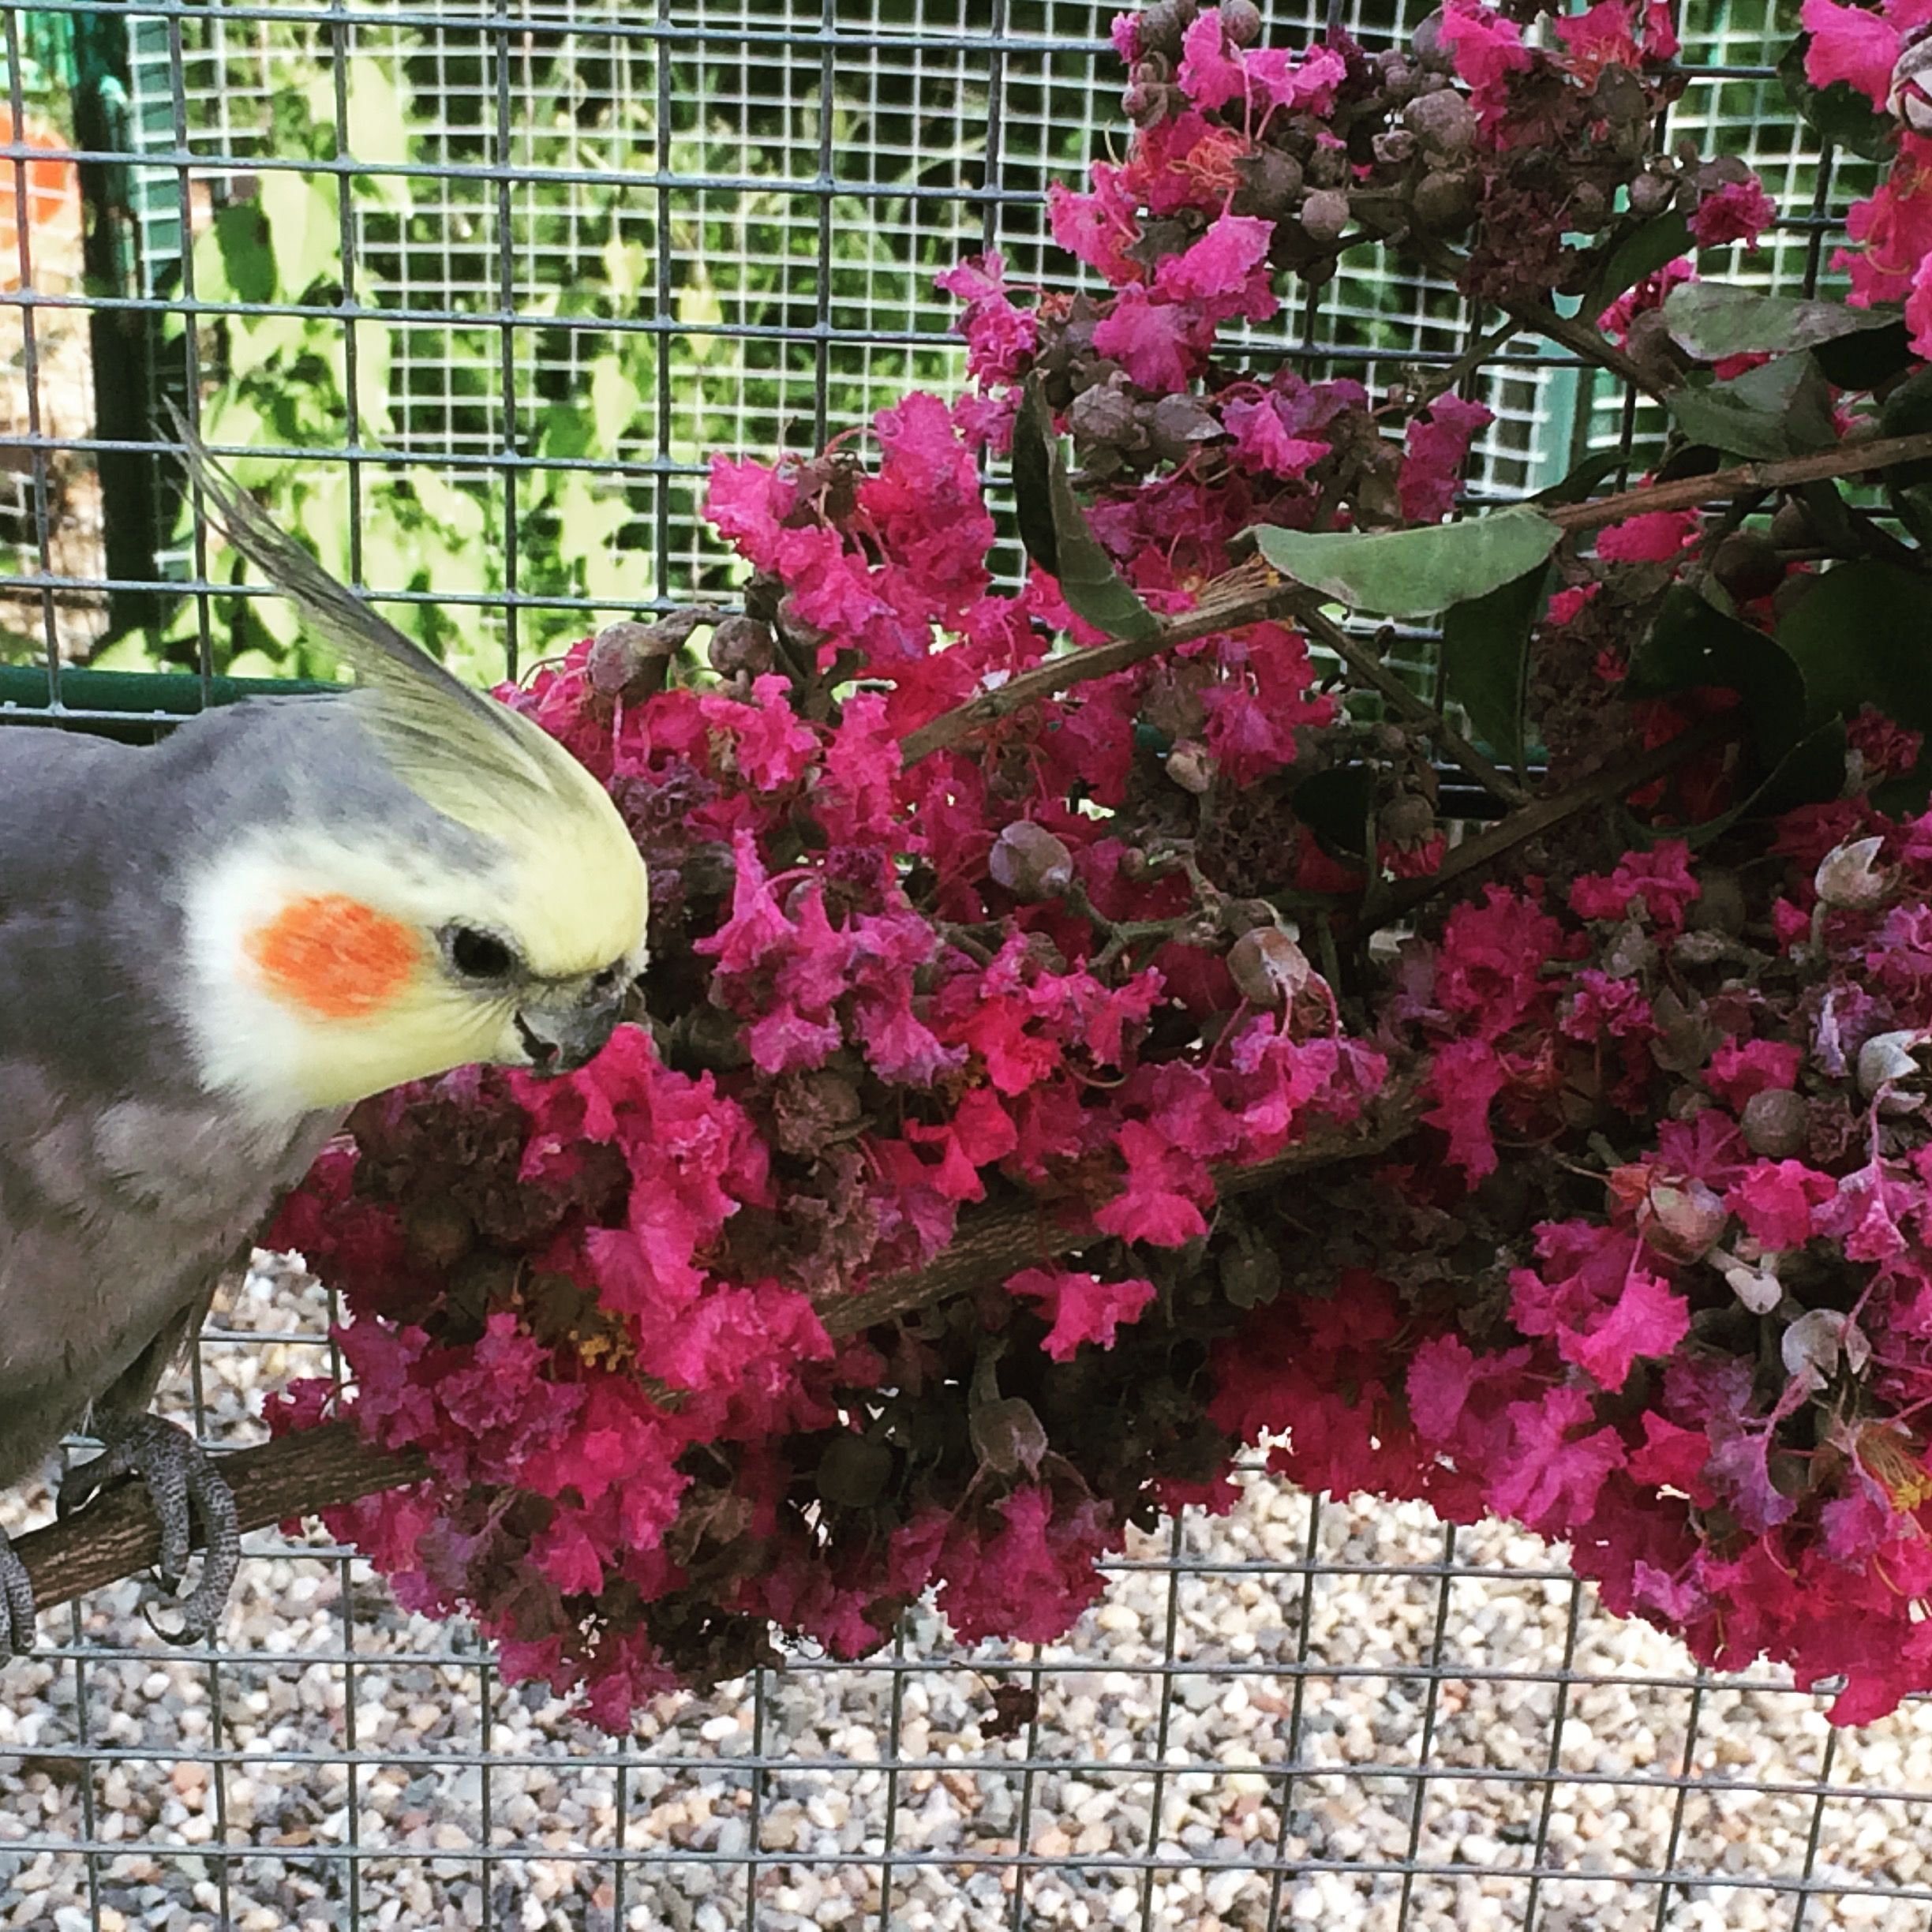 Enrichment with fresh branches and flowers of Crepe Myrtle